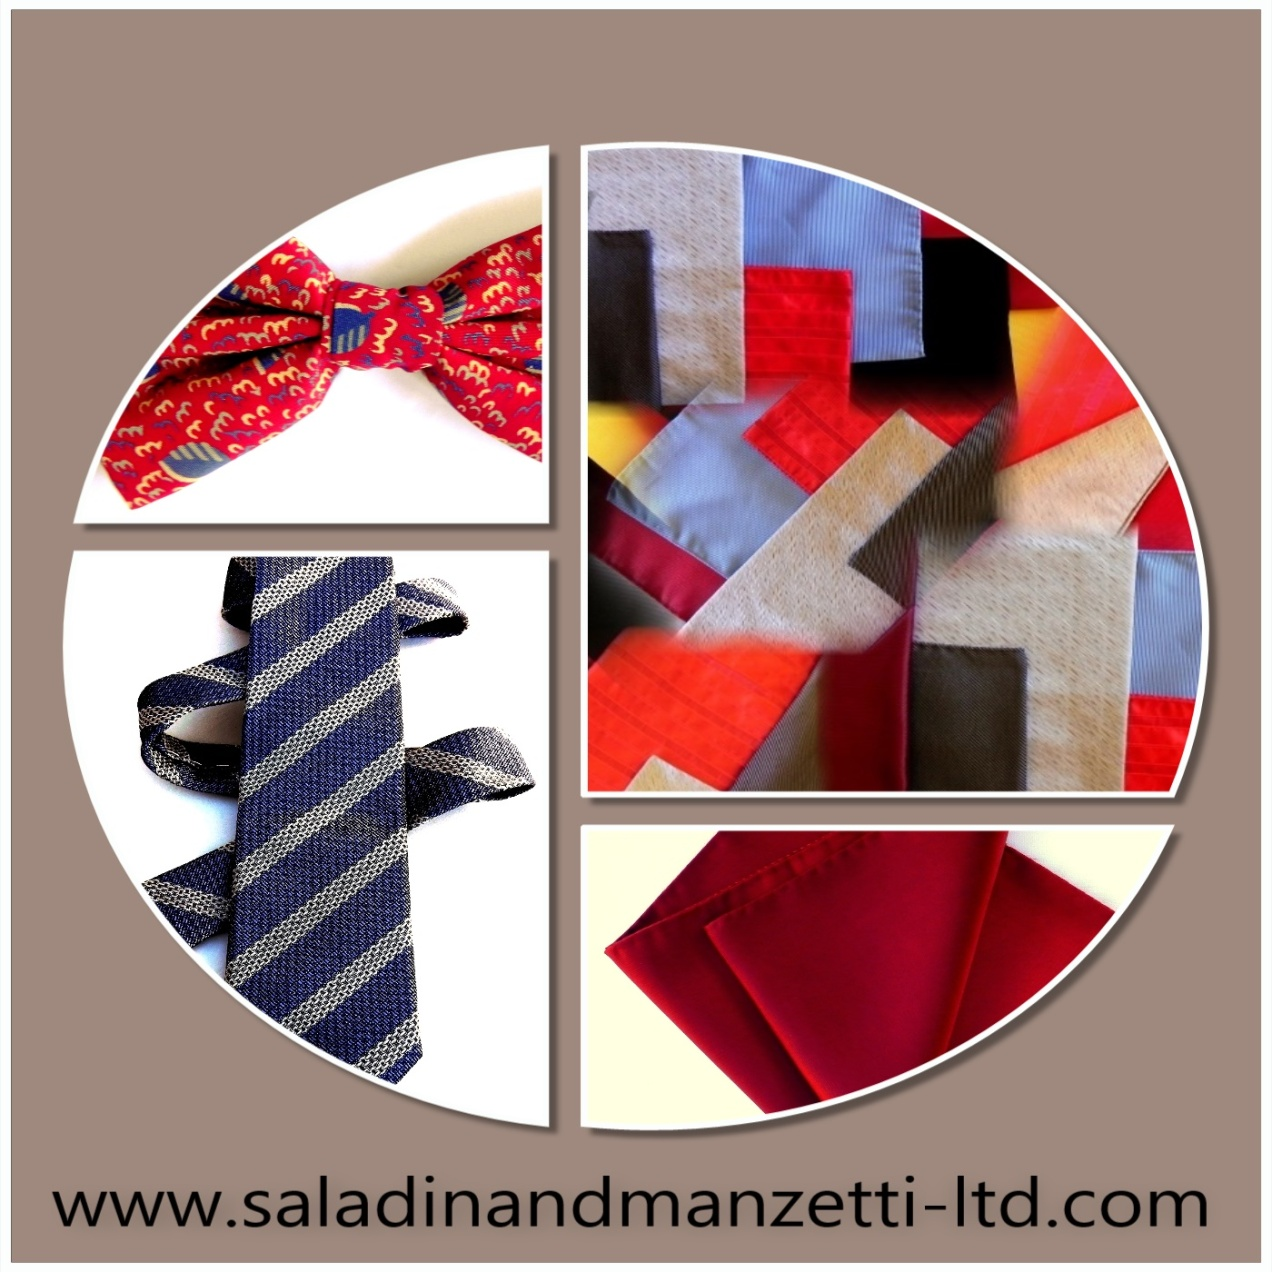 Silk ties, bow ties, scarves, pocket squares, fashion accessories.